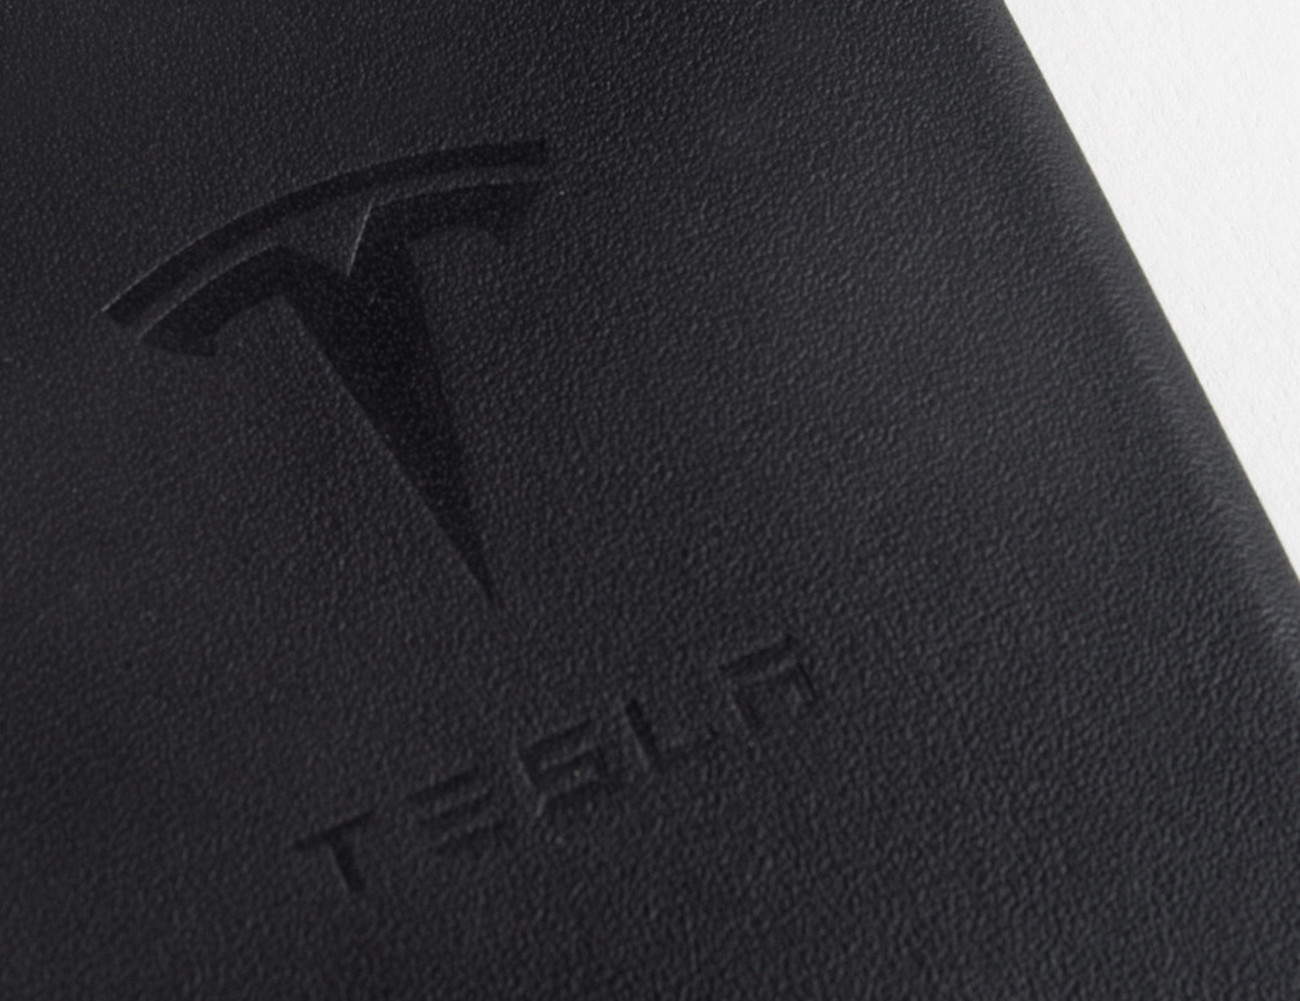 Tesla Gear Leather iPhone Case